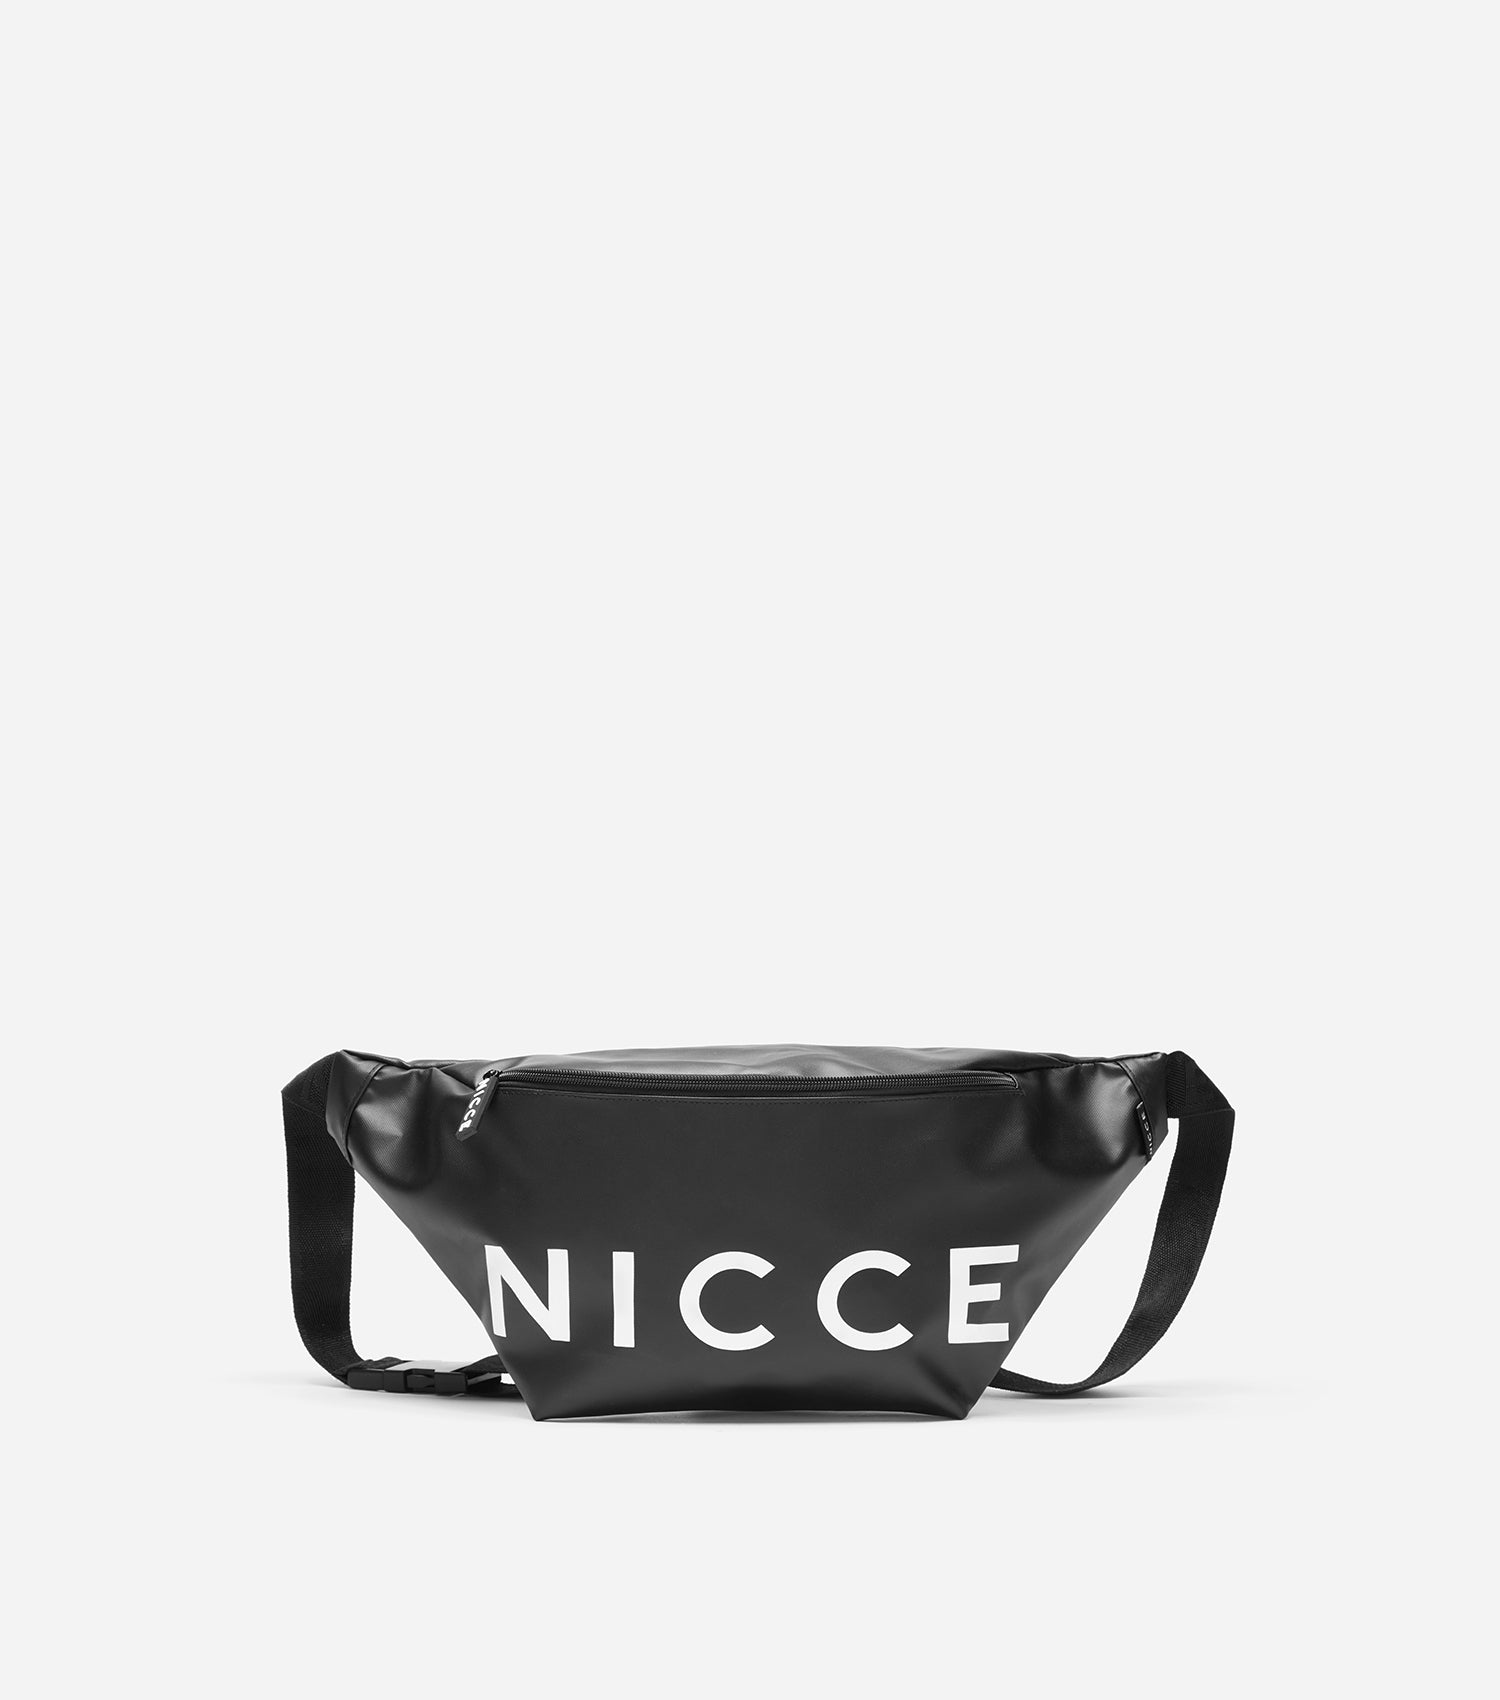 NICCE Zero Bum Bag | Black, Bags